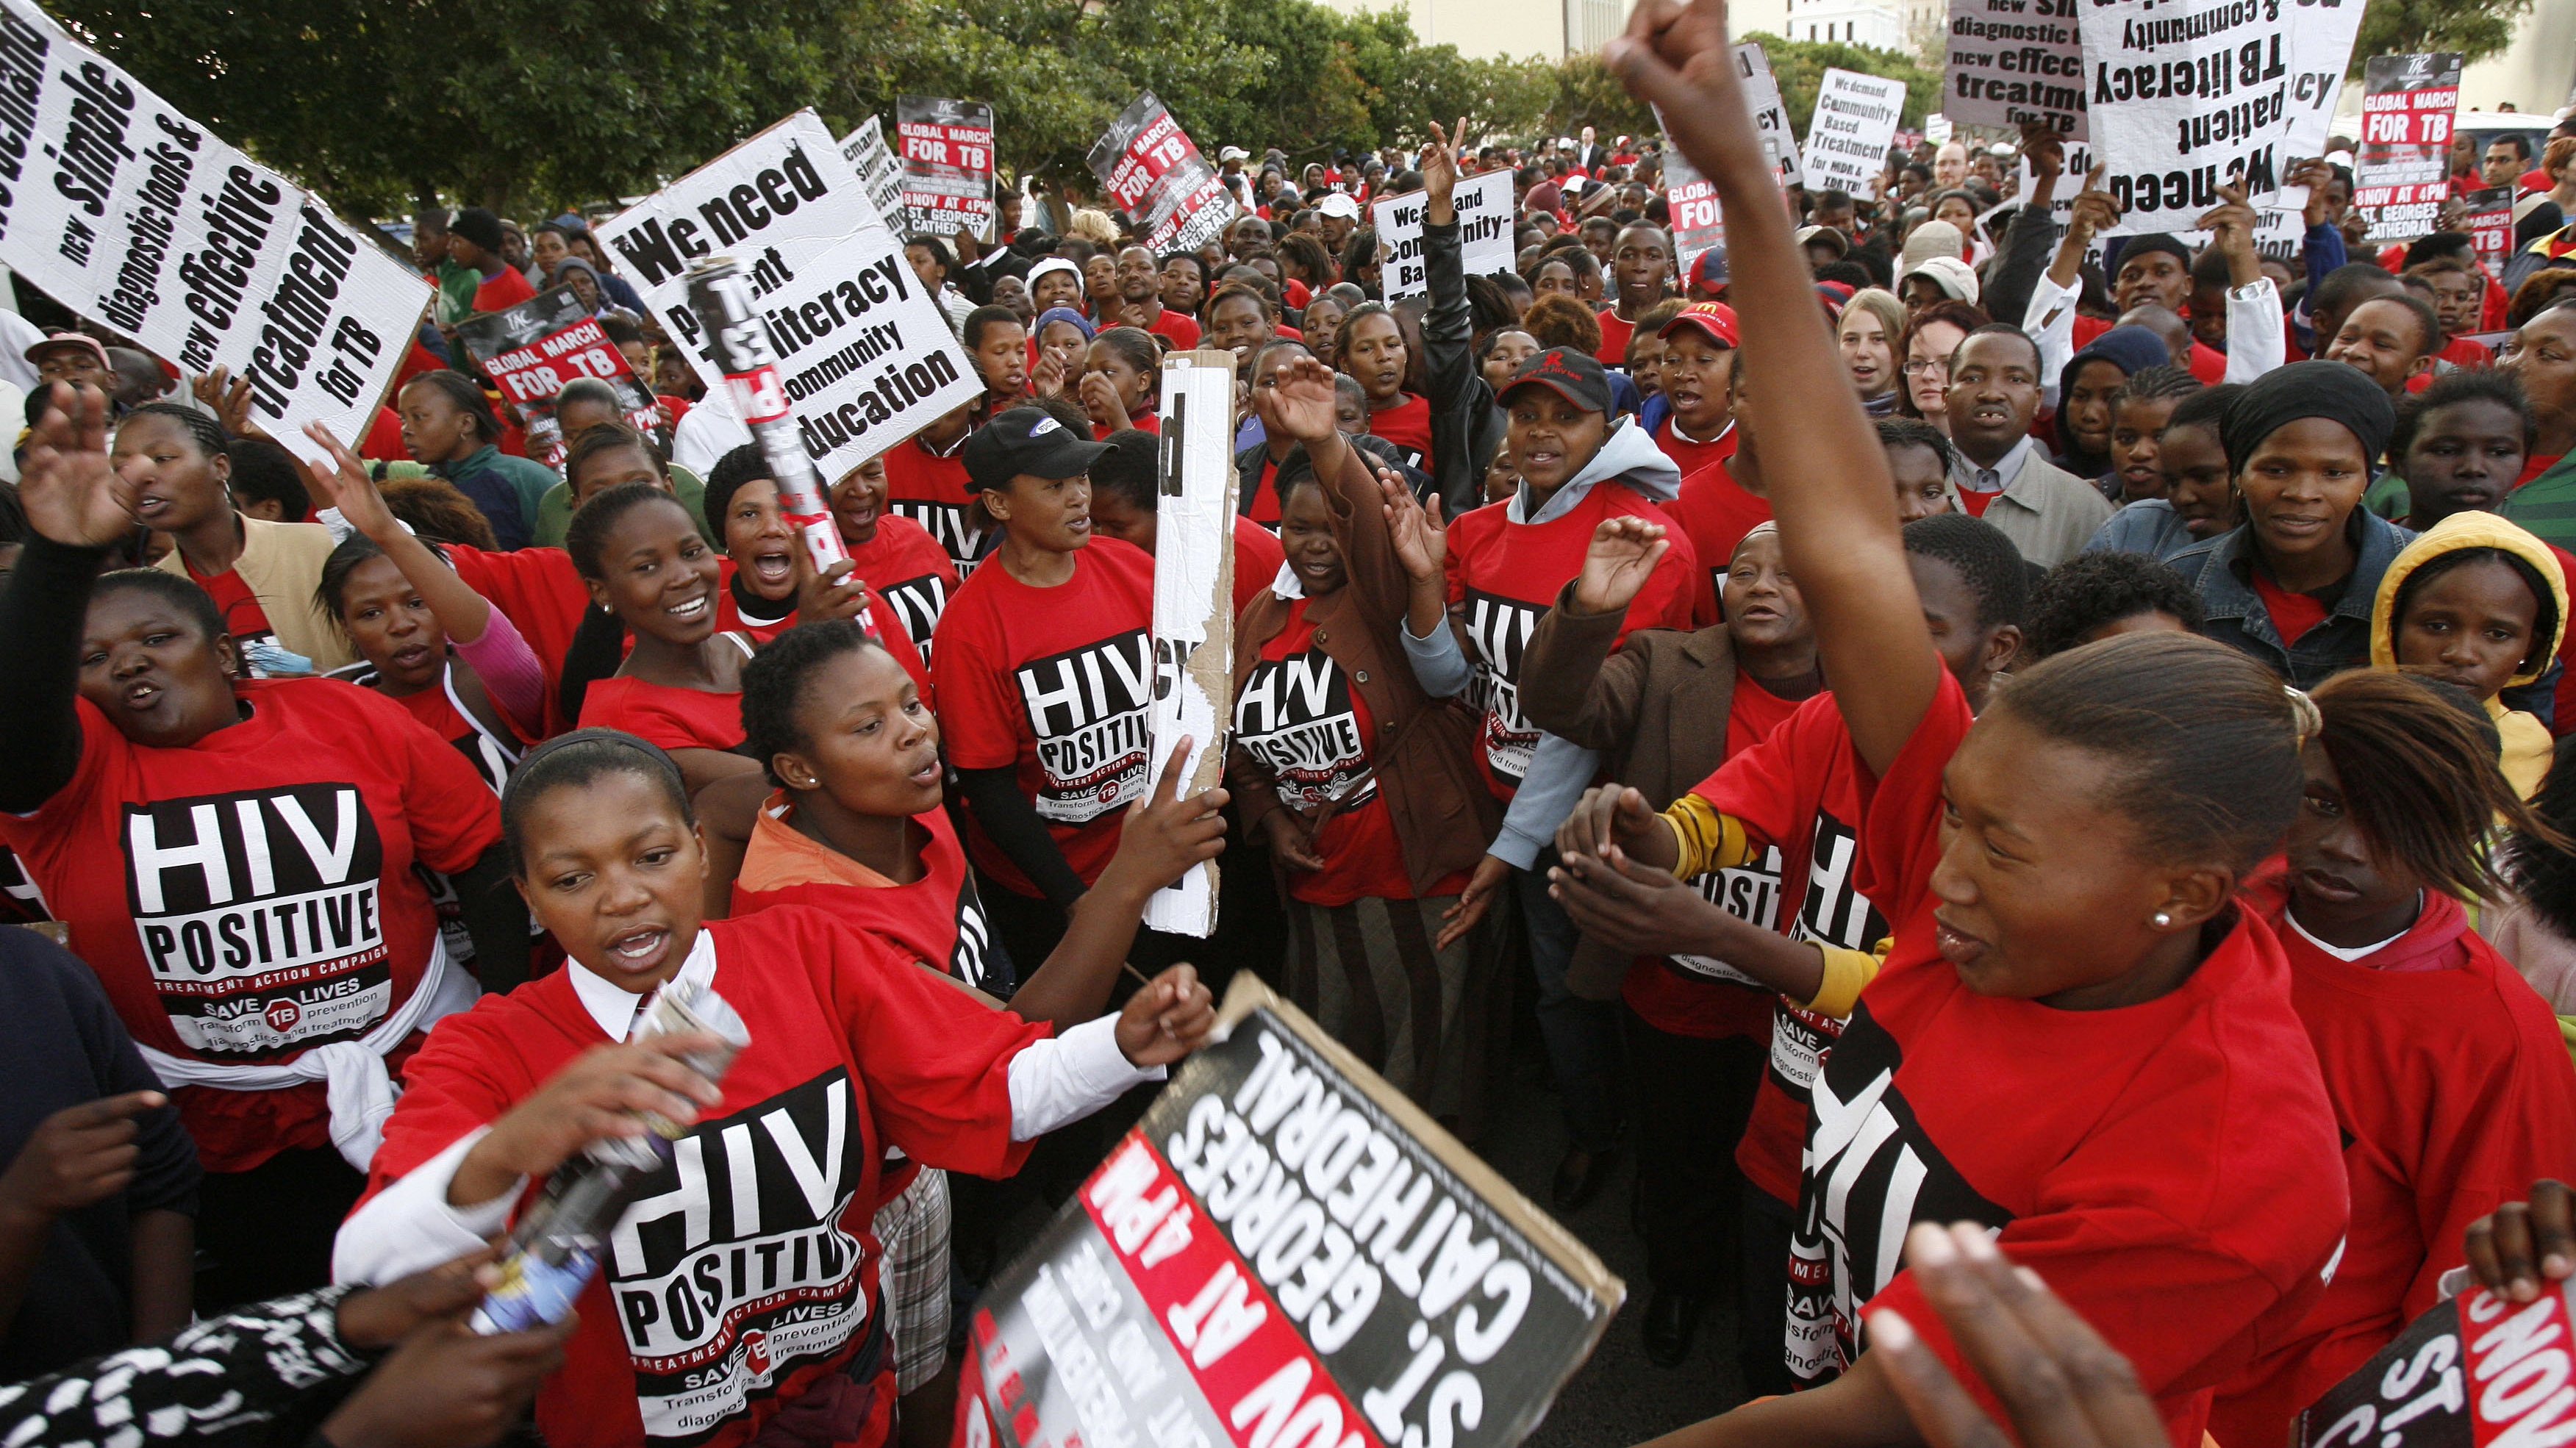 Demonstrators march through the streets of Cape Town to highlight the need for new strategies and medicines to curb the spread of tuberculosis November 8, 2007. The world is at risk of a tuberculosis crisis if killer drug-resistant strains of the disease are not contained, a senior World Health Organisation official warned on Thursday.